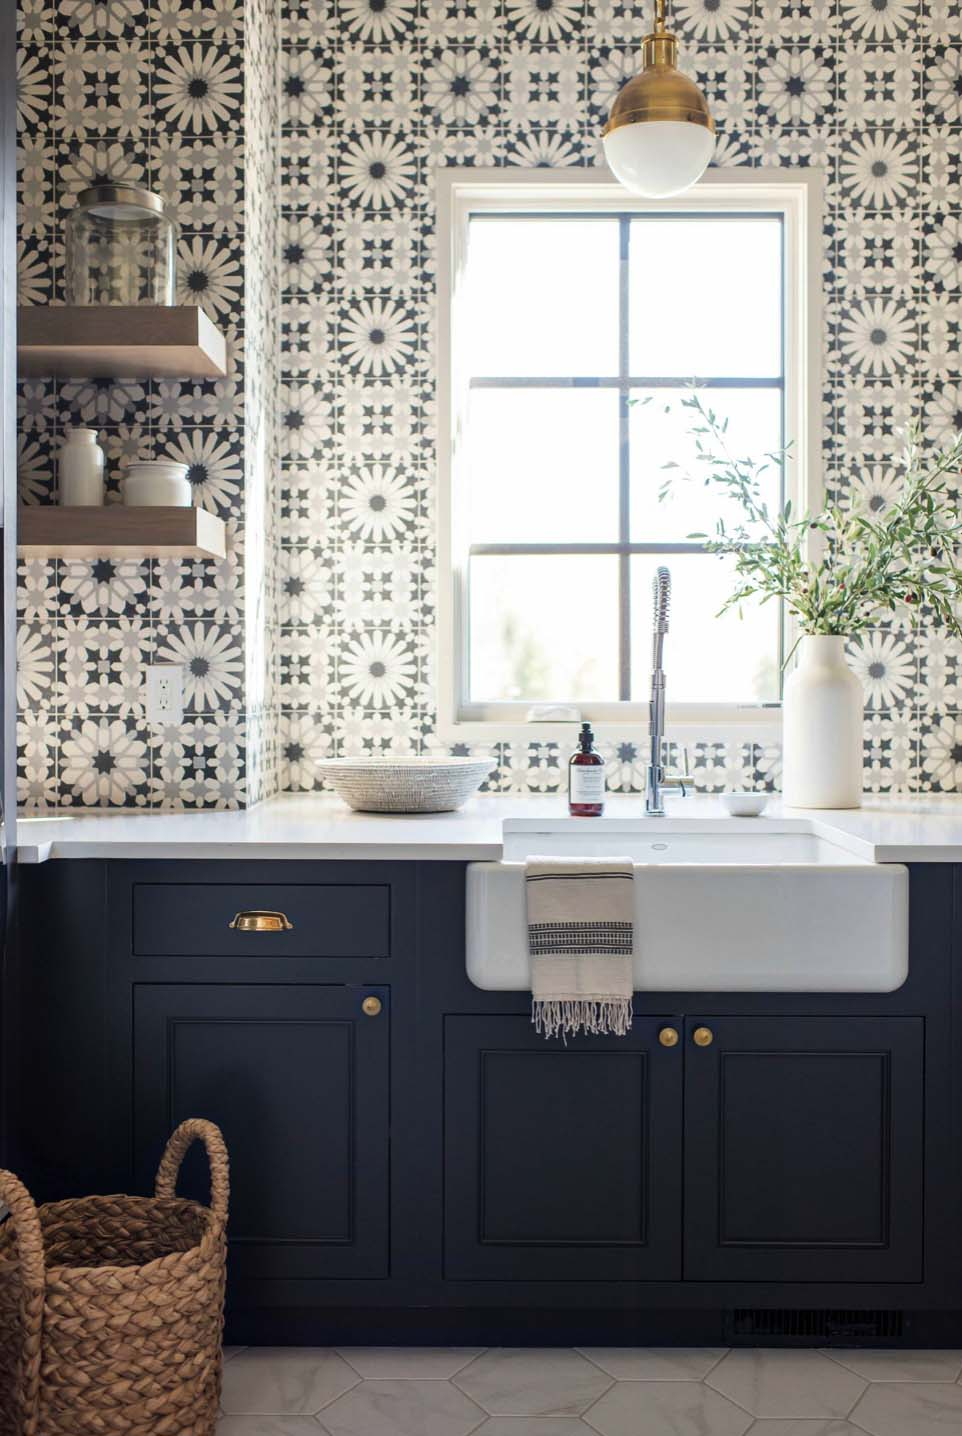 Transitional kitchen with navy cabinets and unique patterned backsplash tile